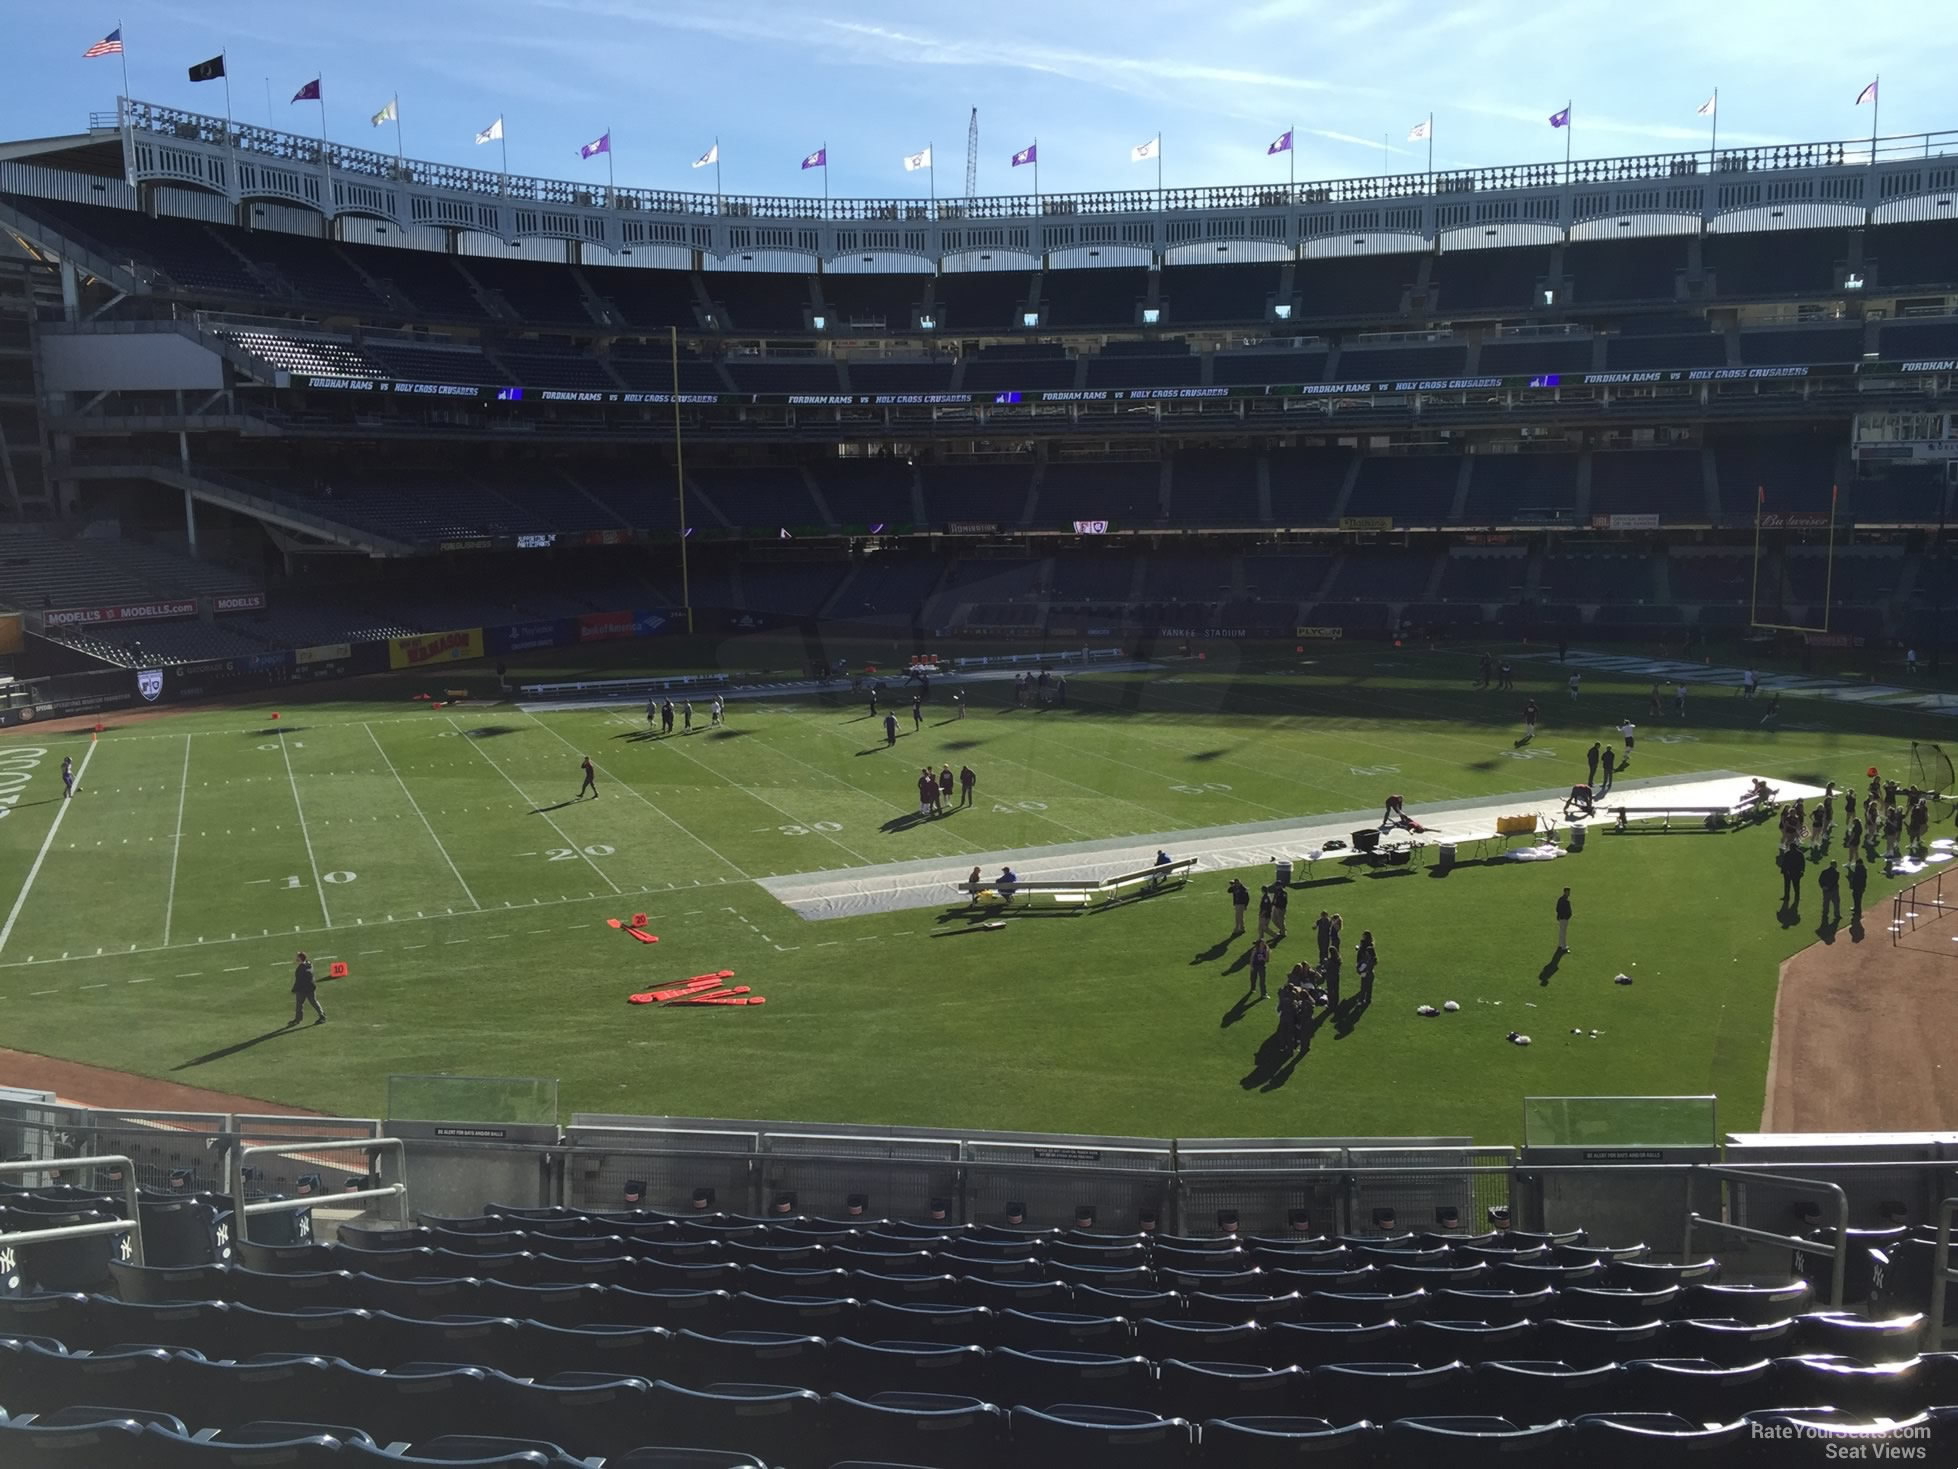 Section 233B seat view